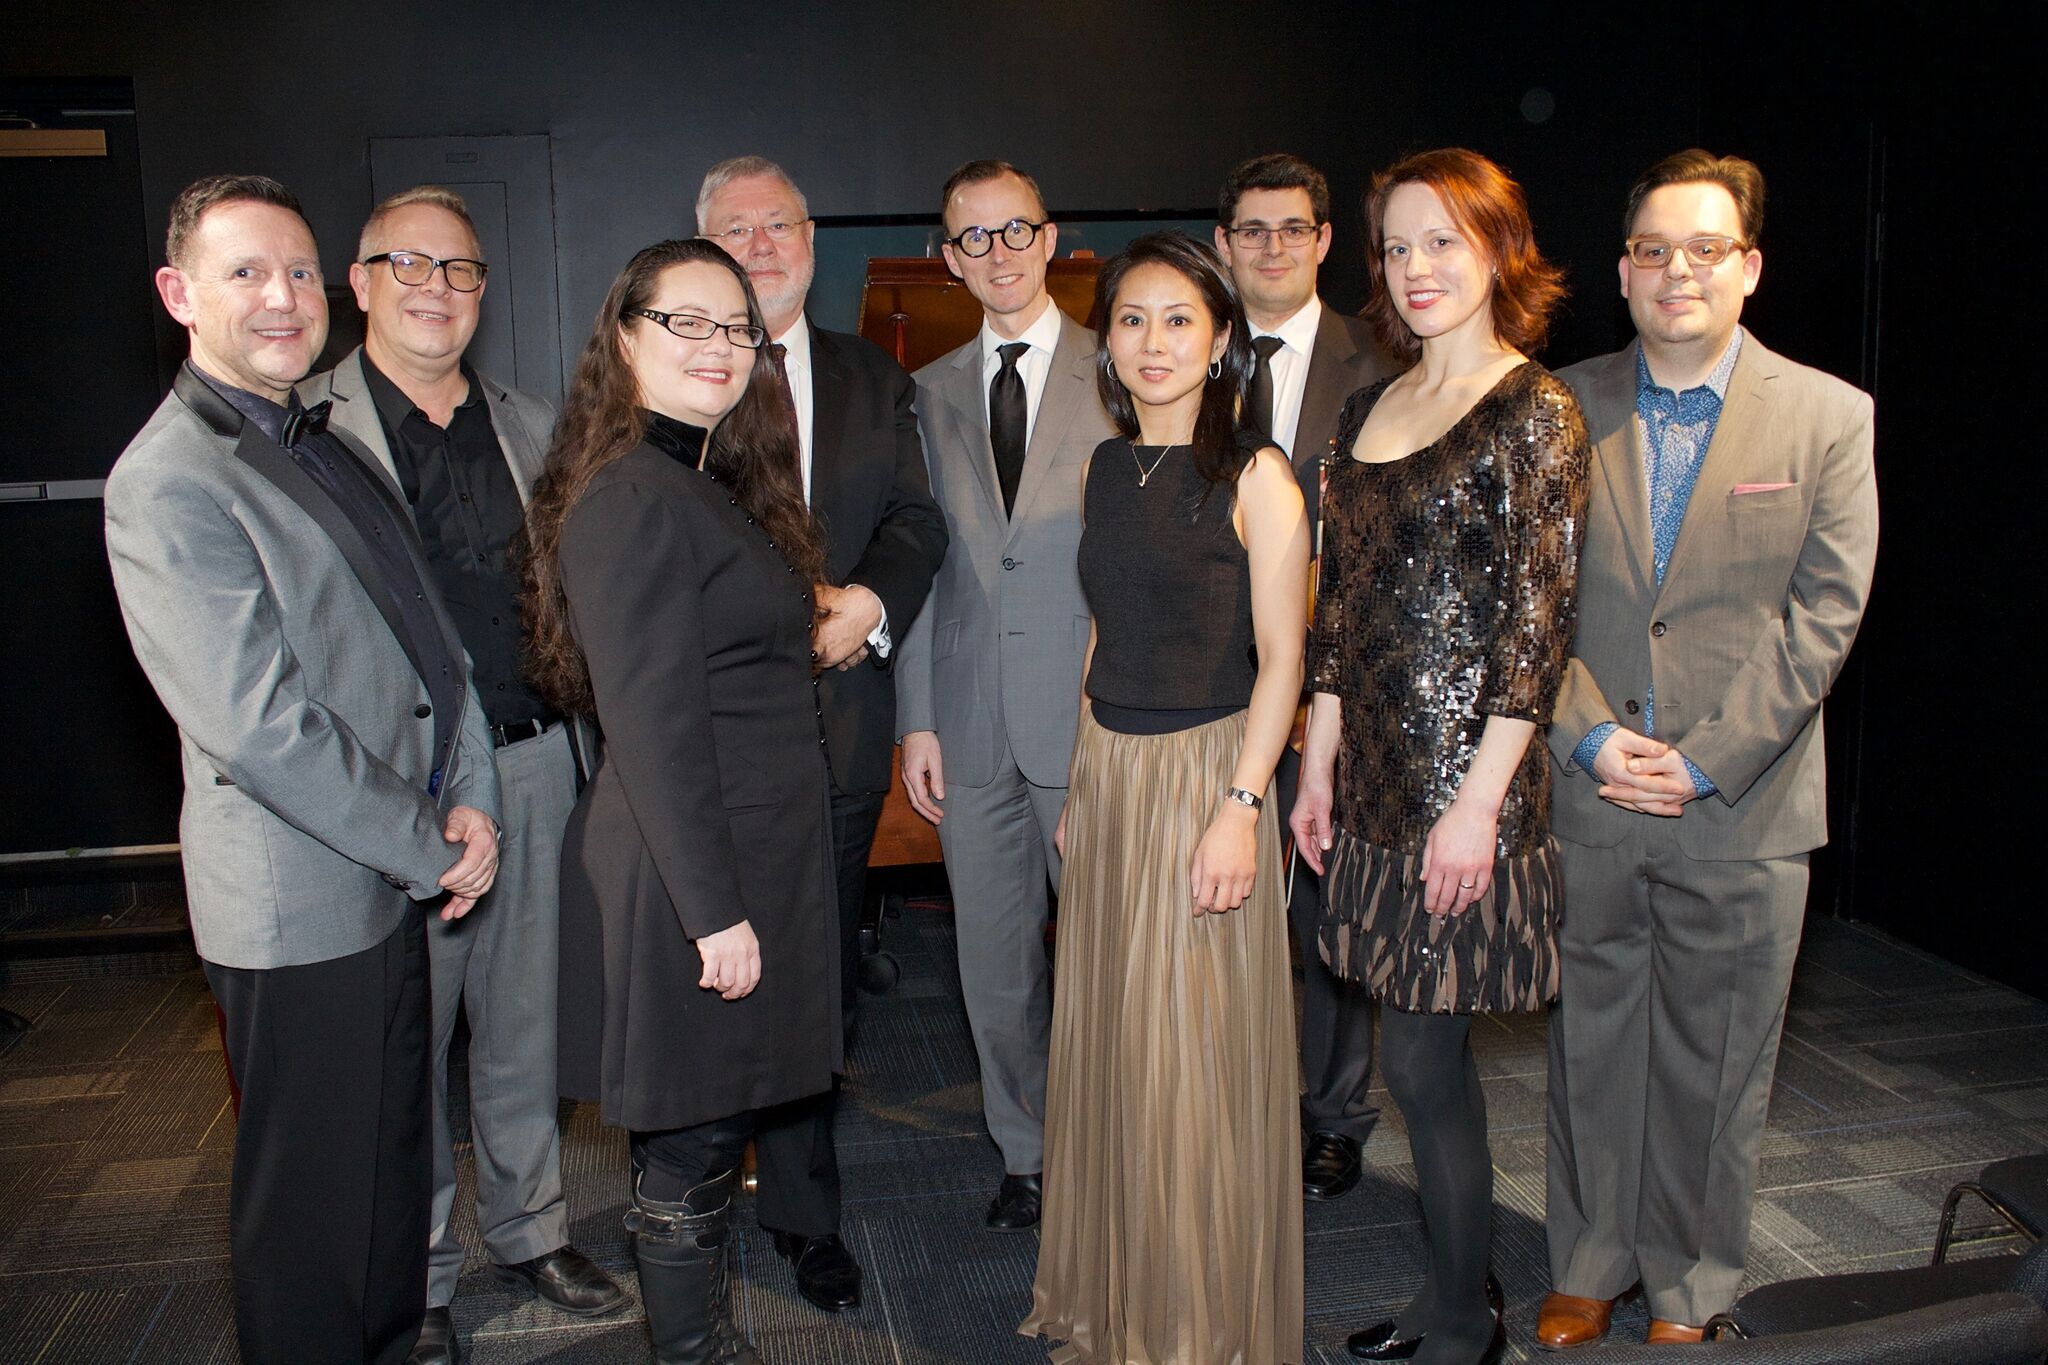 Terence Dawson, piano; Sean Bickerton, CMC BC Director; Rachel Iwaasa, piano; David Duke; Joseph Elworthy, cello; Amanda Chan, piano; Nicholas Wright, violin; Robyn Driedger-Klassen, soprano; Stefan Hintersteininger, CMC BC Librarian  Photo: Tom Hudock